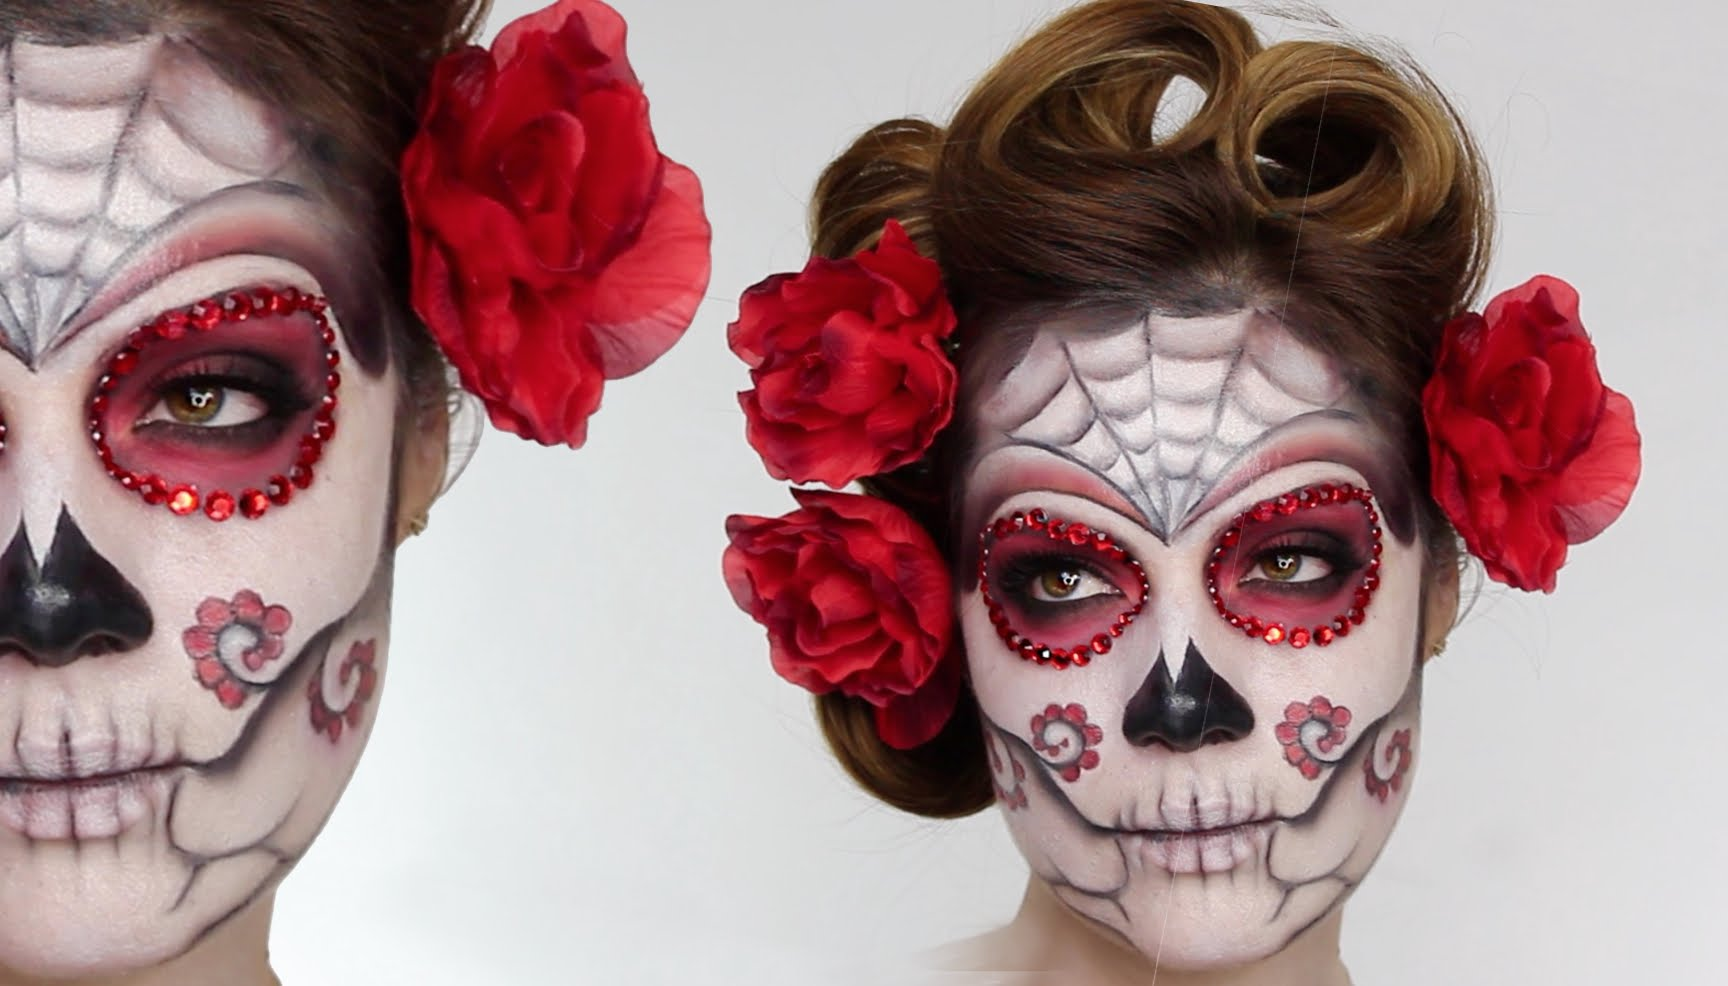 skeleton face paint, two images showing a woman's face, decorated with white, black and red paint, and red rhinestones, sugar skull costume, curled brunette hair, with red flowers